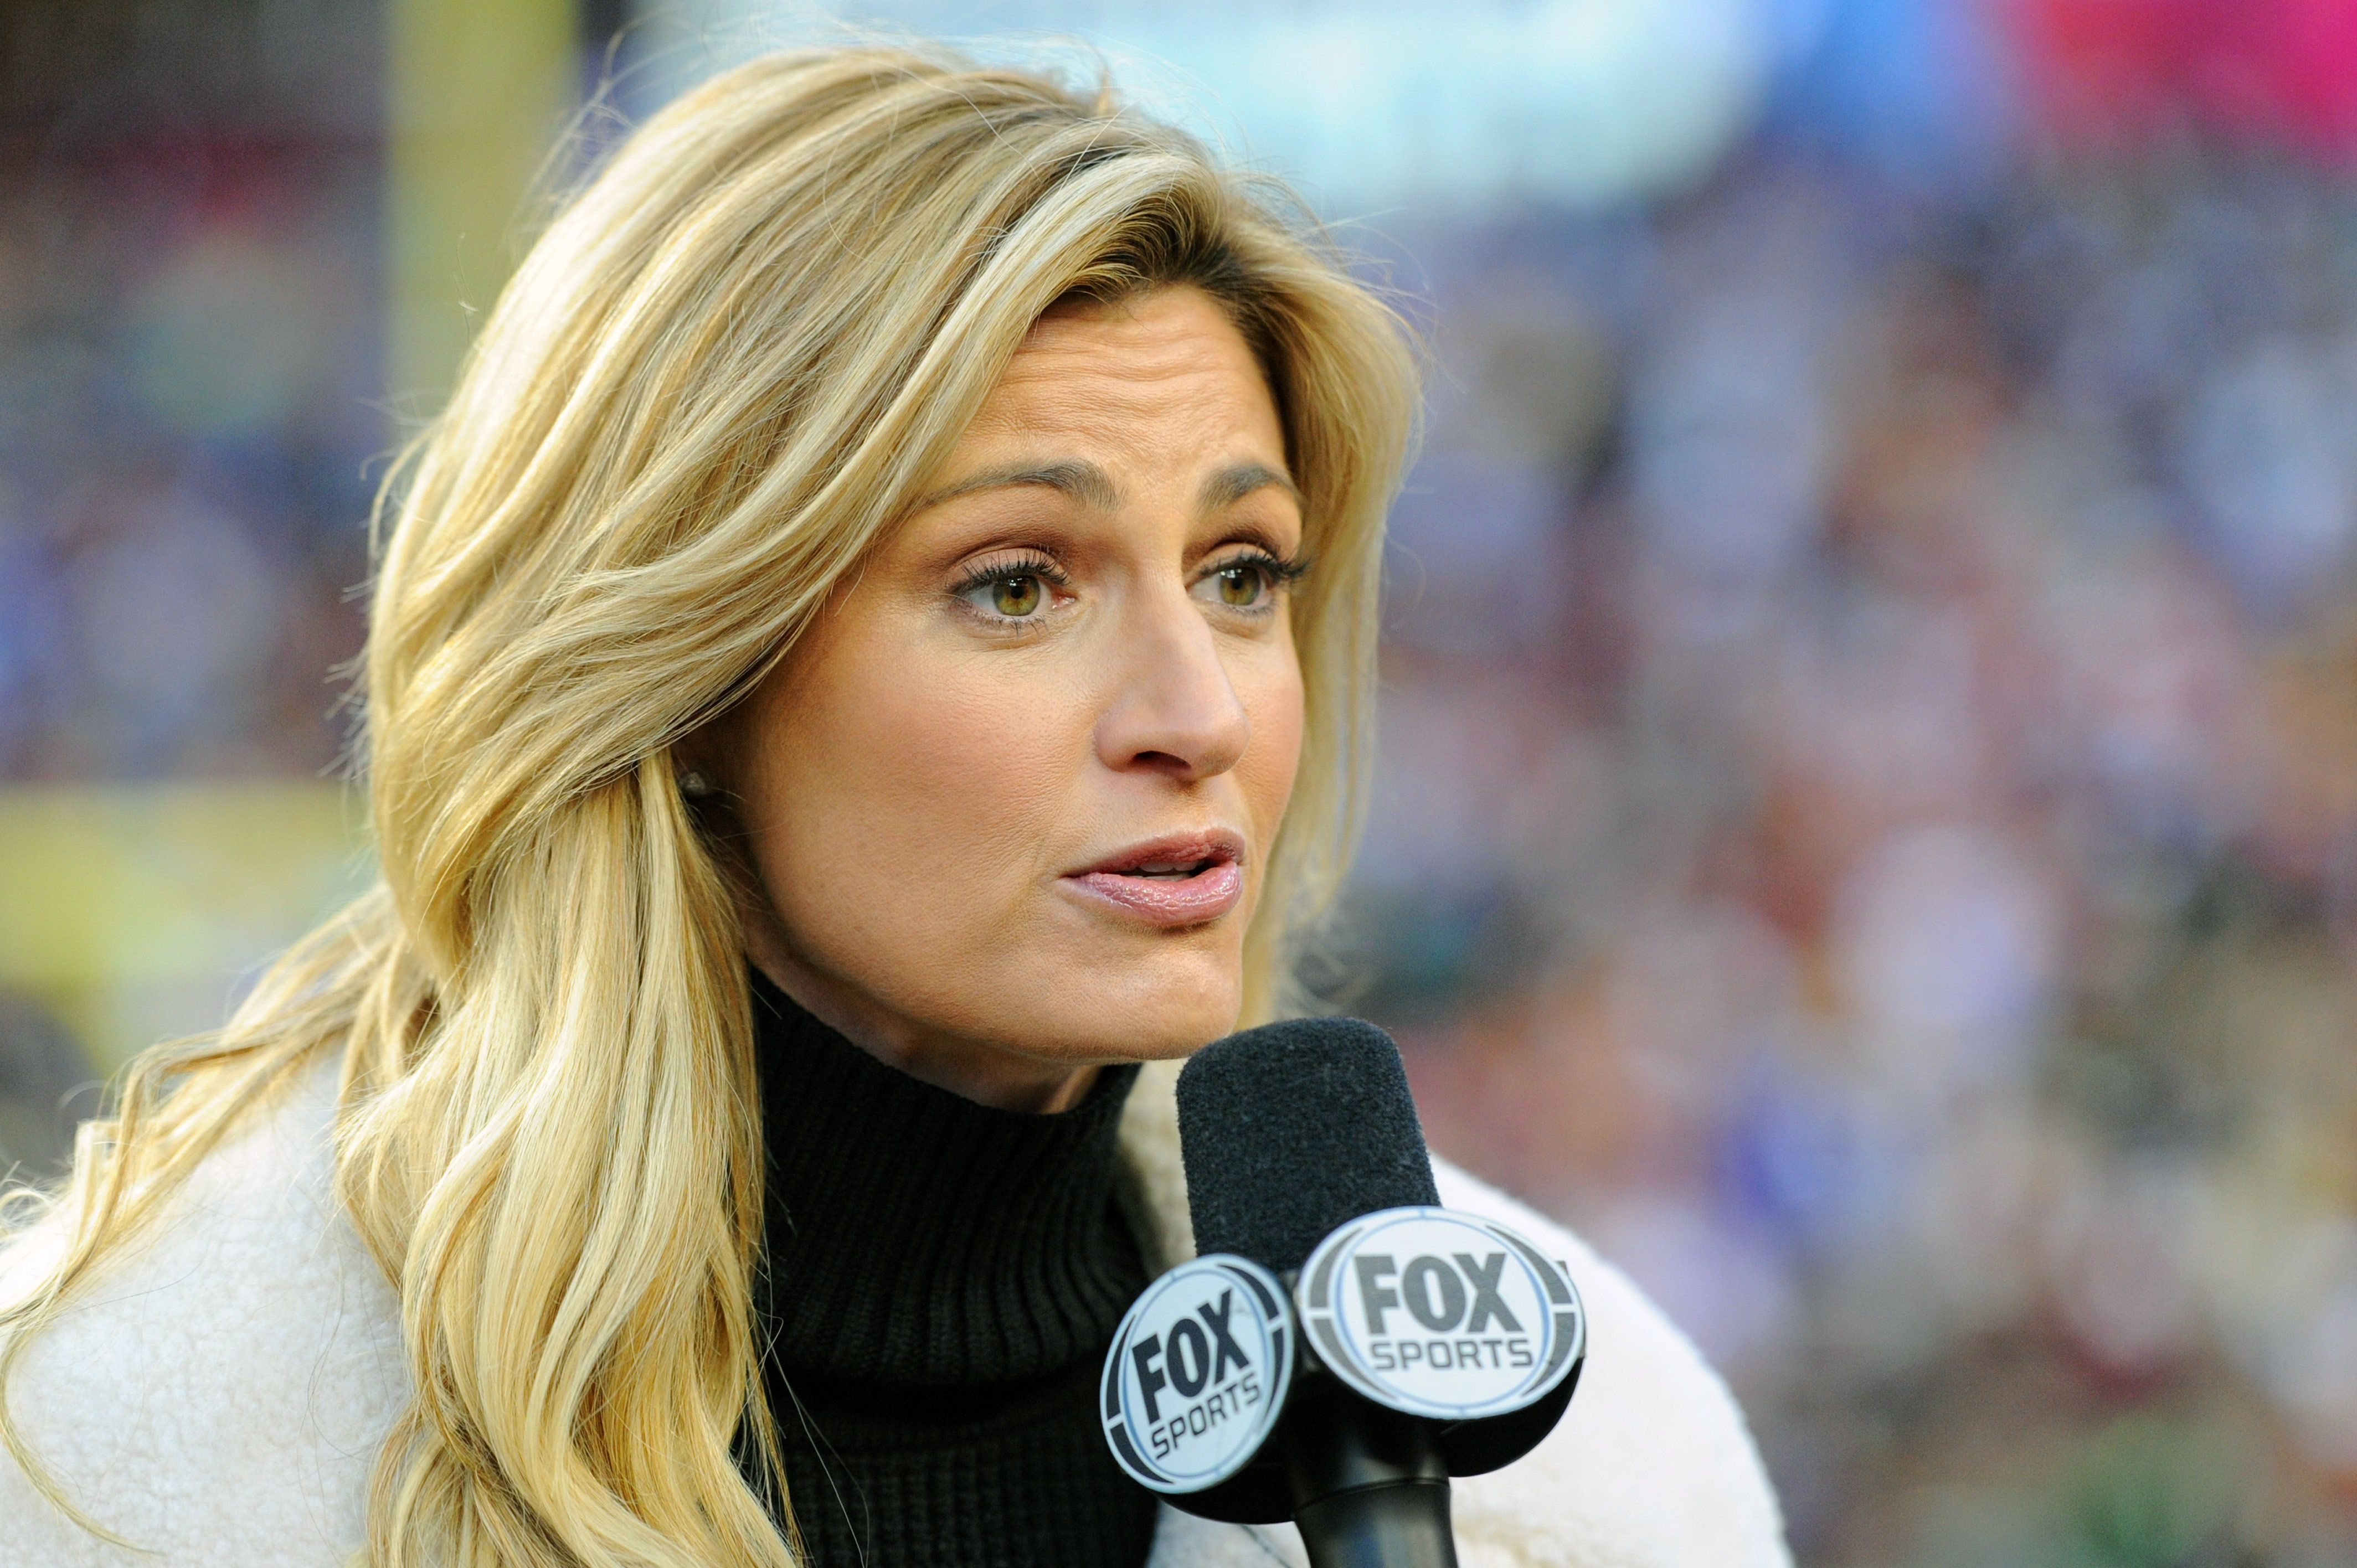 LANDOVER, MD - JANUARY 01: Fox broadcaster Erin Andrews works the game on January 1, 2017, at FedExField in Landover, MD. The New York Giants defeated the Washington Redskins, 19-10. (Photo by Mark Goldman/Icon Sportswire via Getty Images)